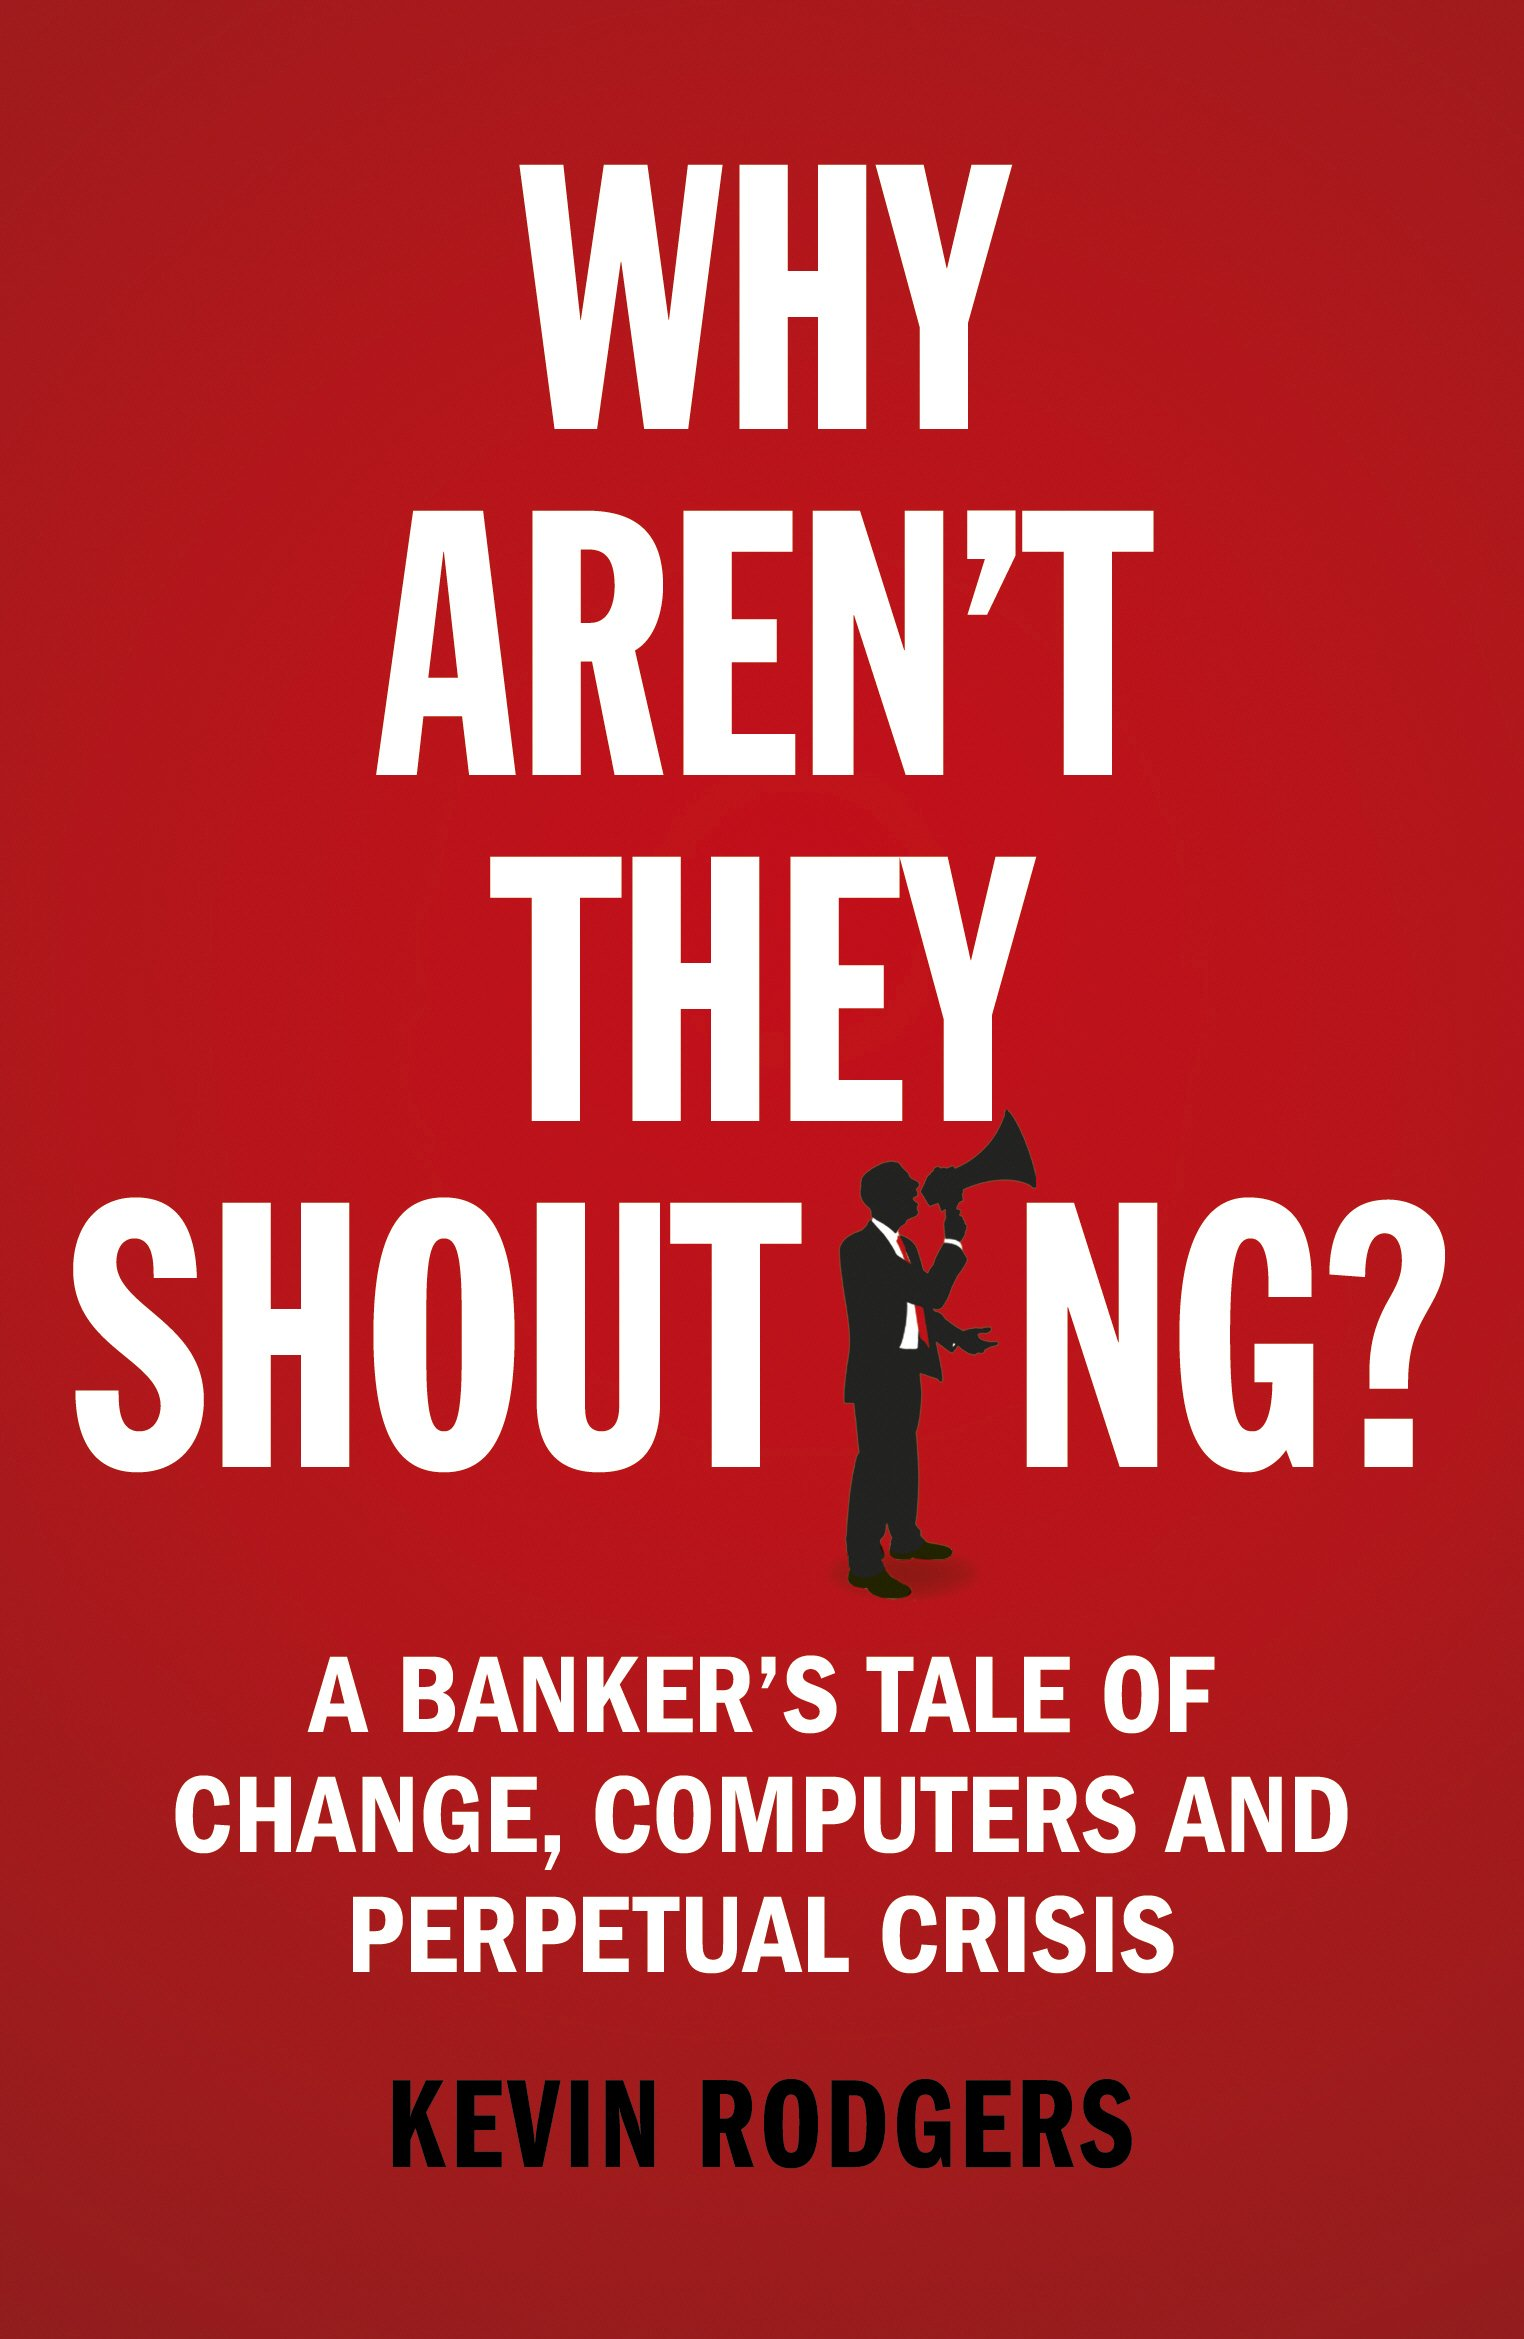 Download Why Aren't They Shouting?: A Banker's Tale of Change, Computers and Perpetual Crisis pdf